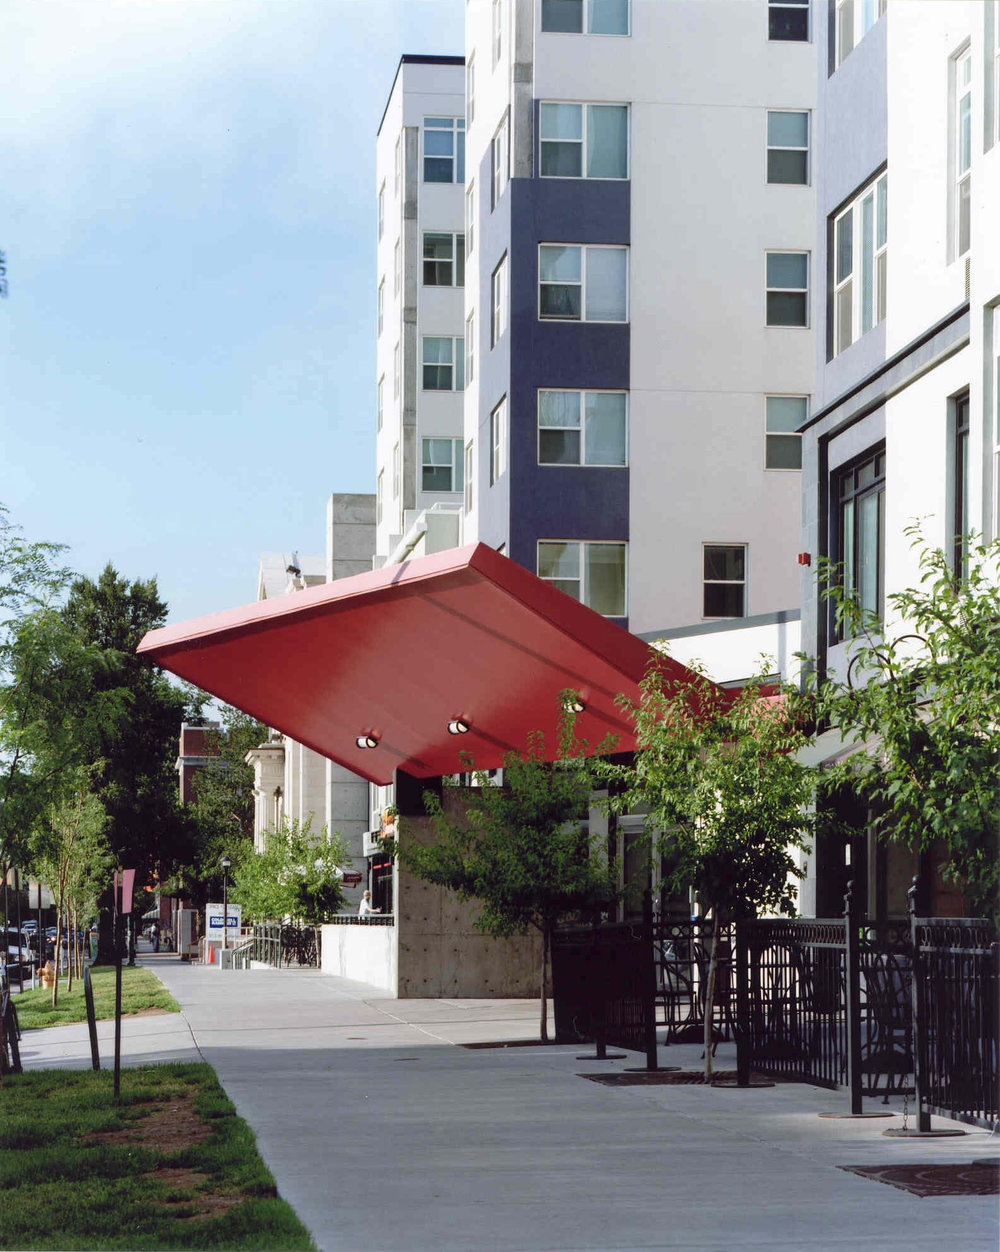 Capitol Heights Apartments - 2002 Award of Merit - AIA Denver chapter2001 Westword Best New Apartment Building